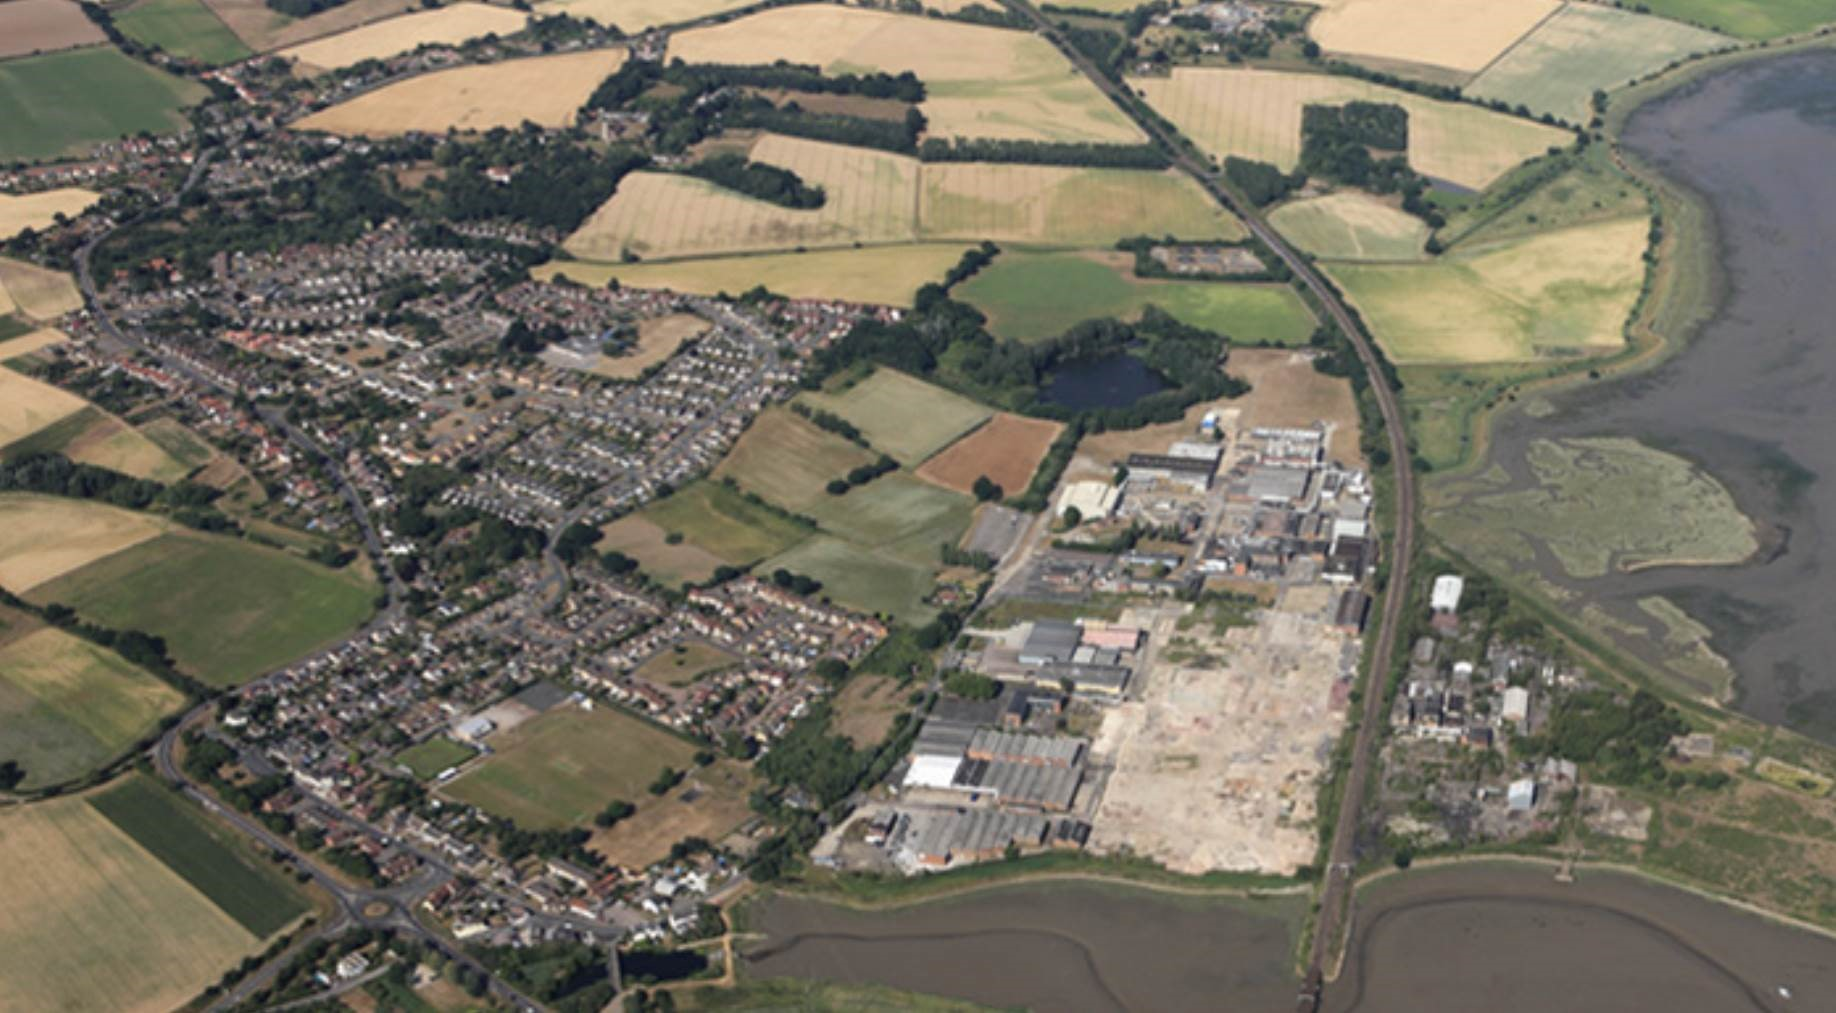 St Francis Group announces the sale of residential development site in Suffolk to Taylor Wimpey.